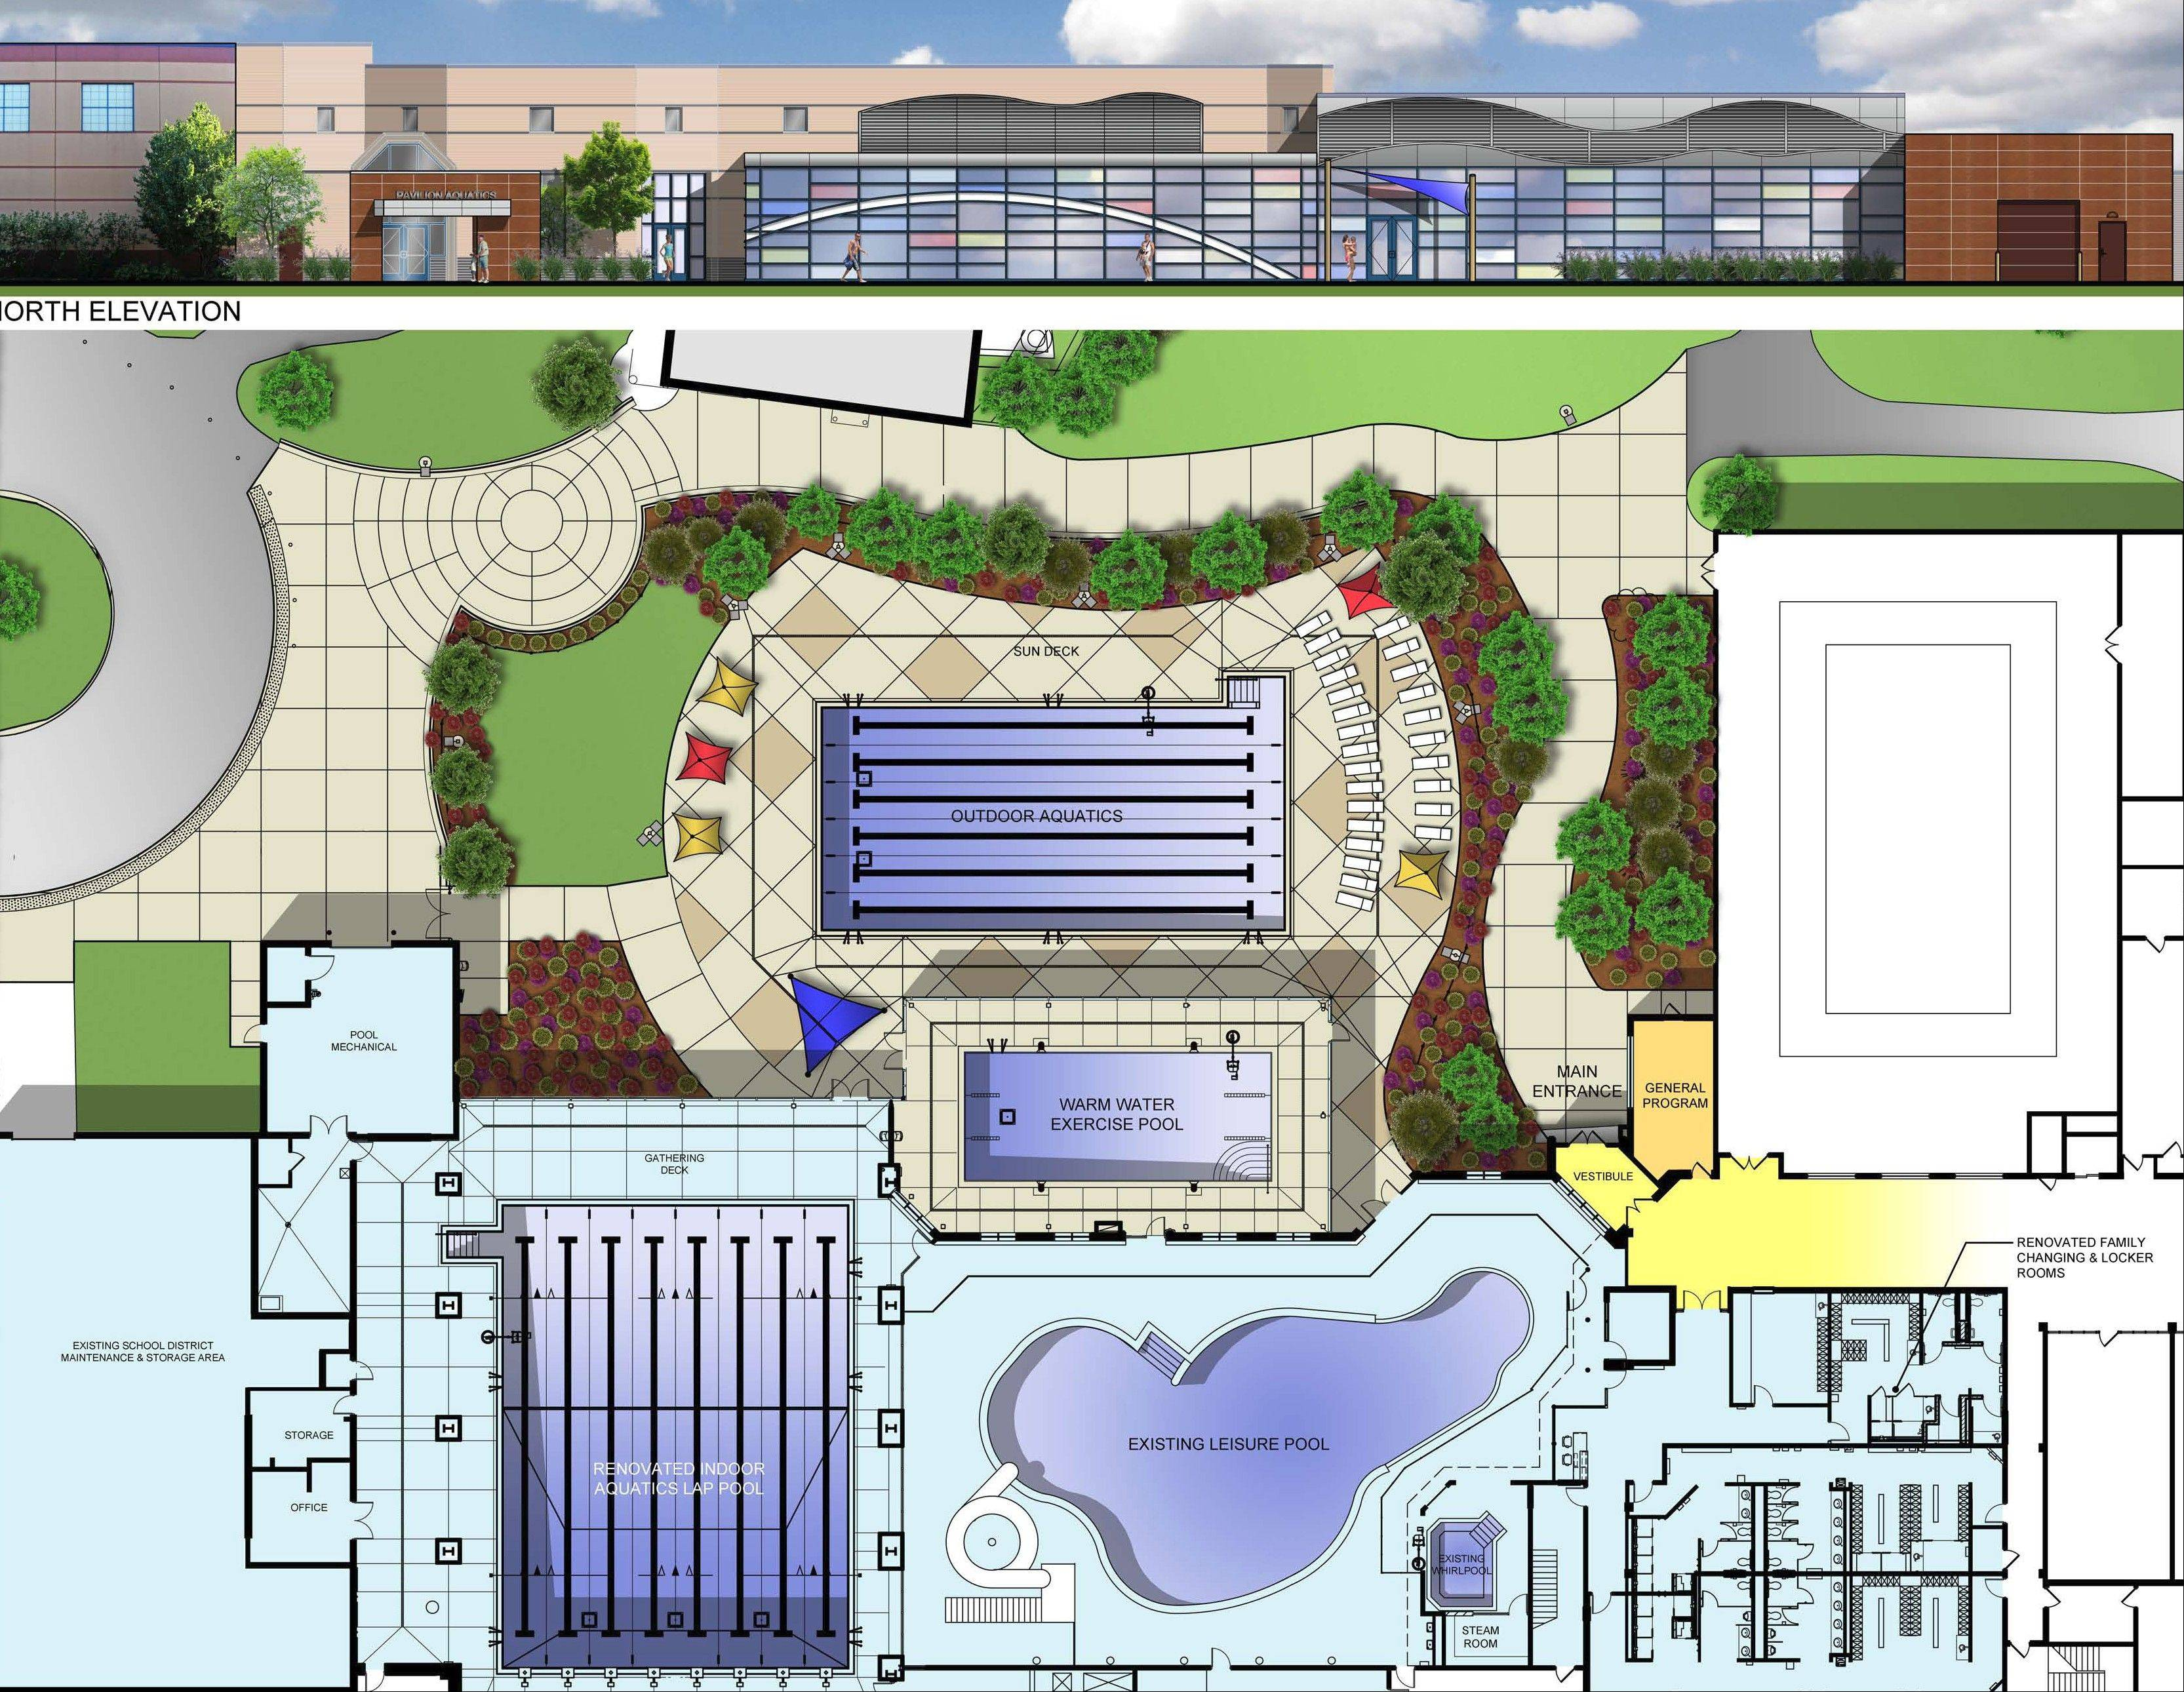 The updated Pavilion Aquatic Center will have a six-lane outdoor lap pool and eight-lane indoor pool.